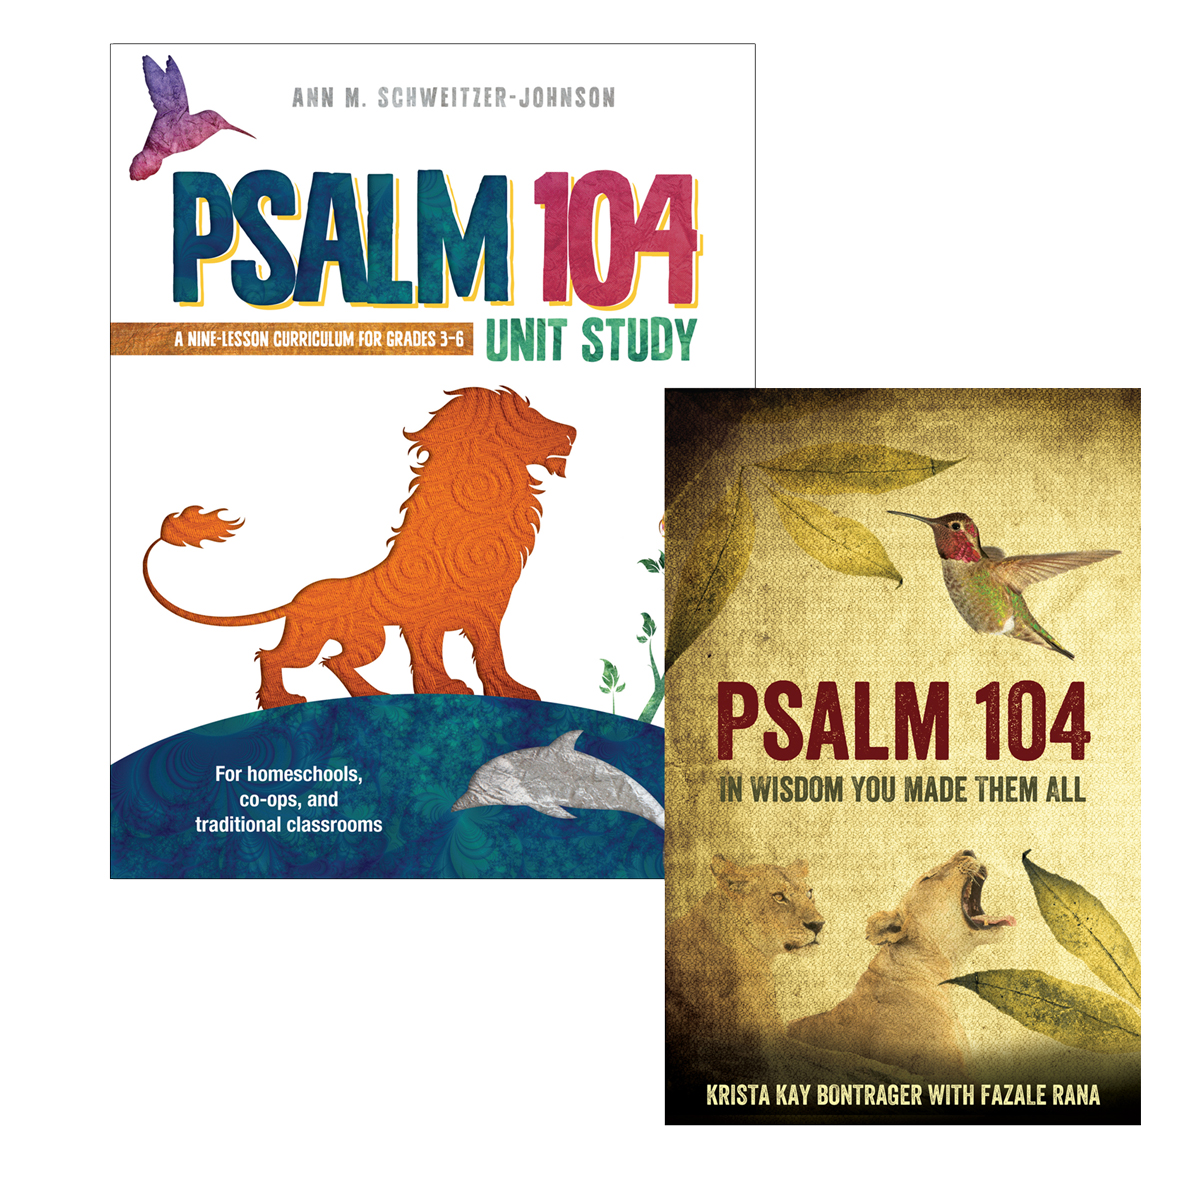 Psalm 104 Unit Study Complete Package (softcover) Image